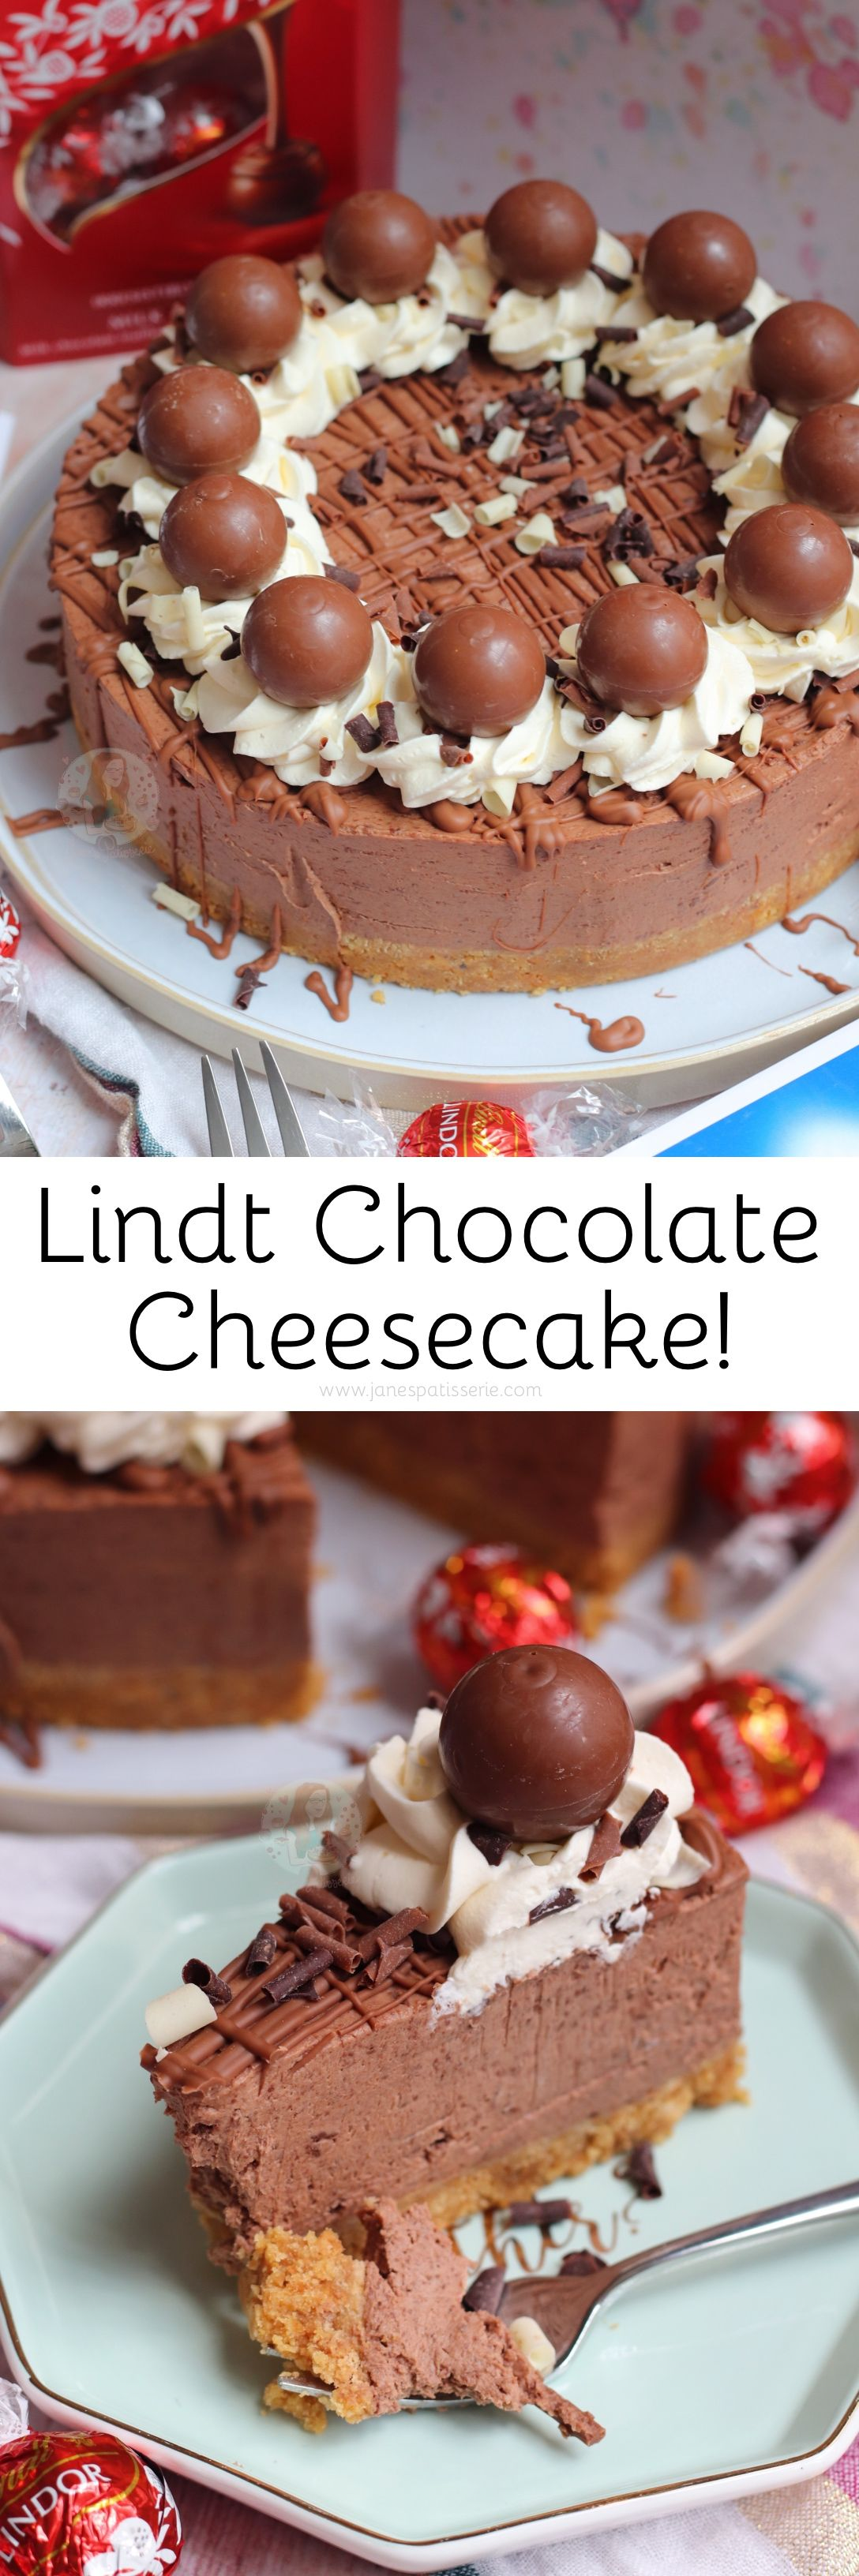 Lindt Chocolate Cheesecake! #chocolatechipcookiedough